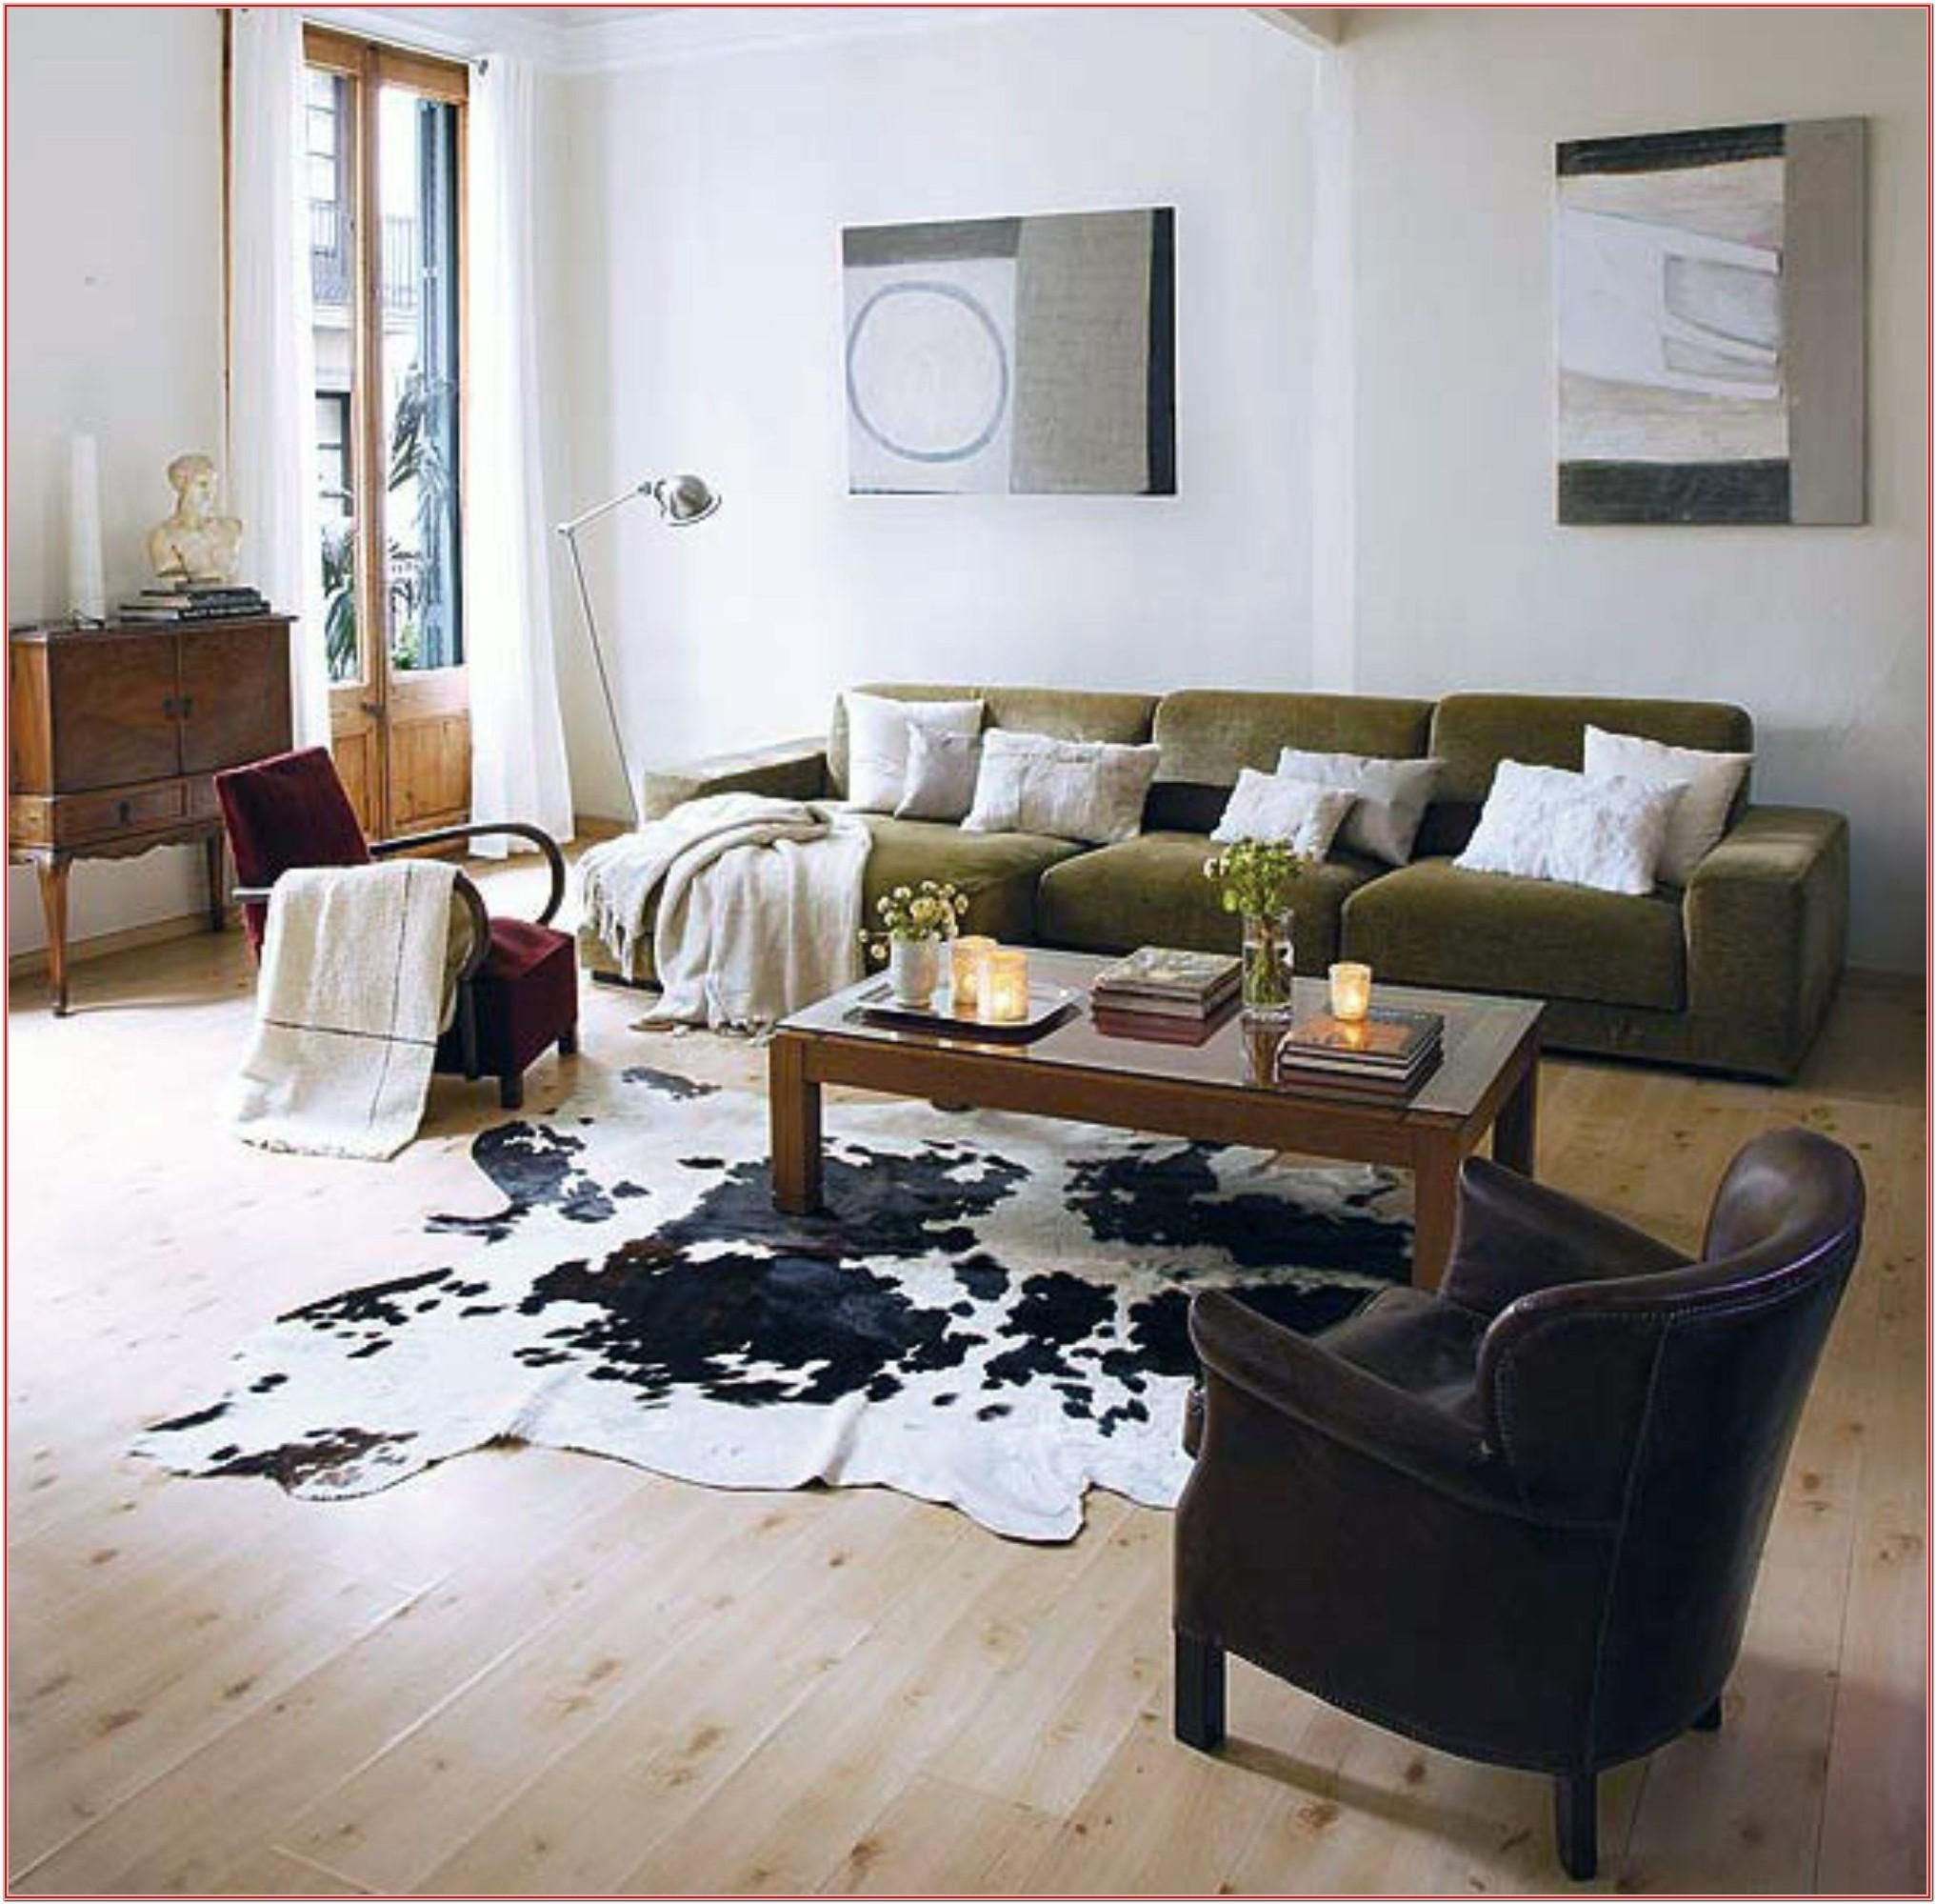 50 Lovely Living Room Design Ideas For 2020: Dark Cowhide Rug Living Room Ideas By Kenneth Woods Di 2020